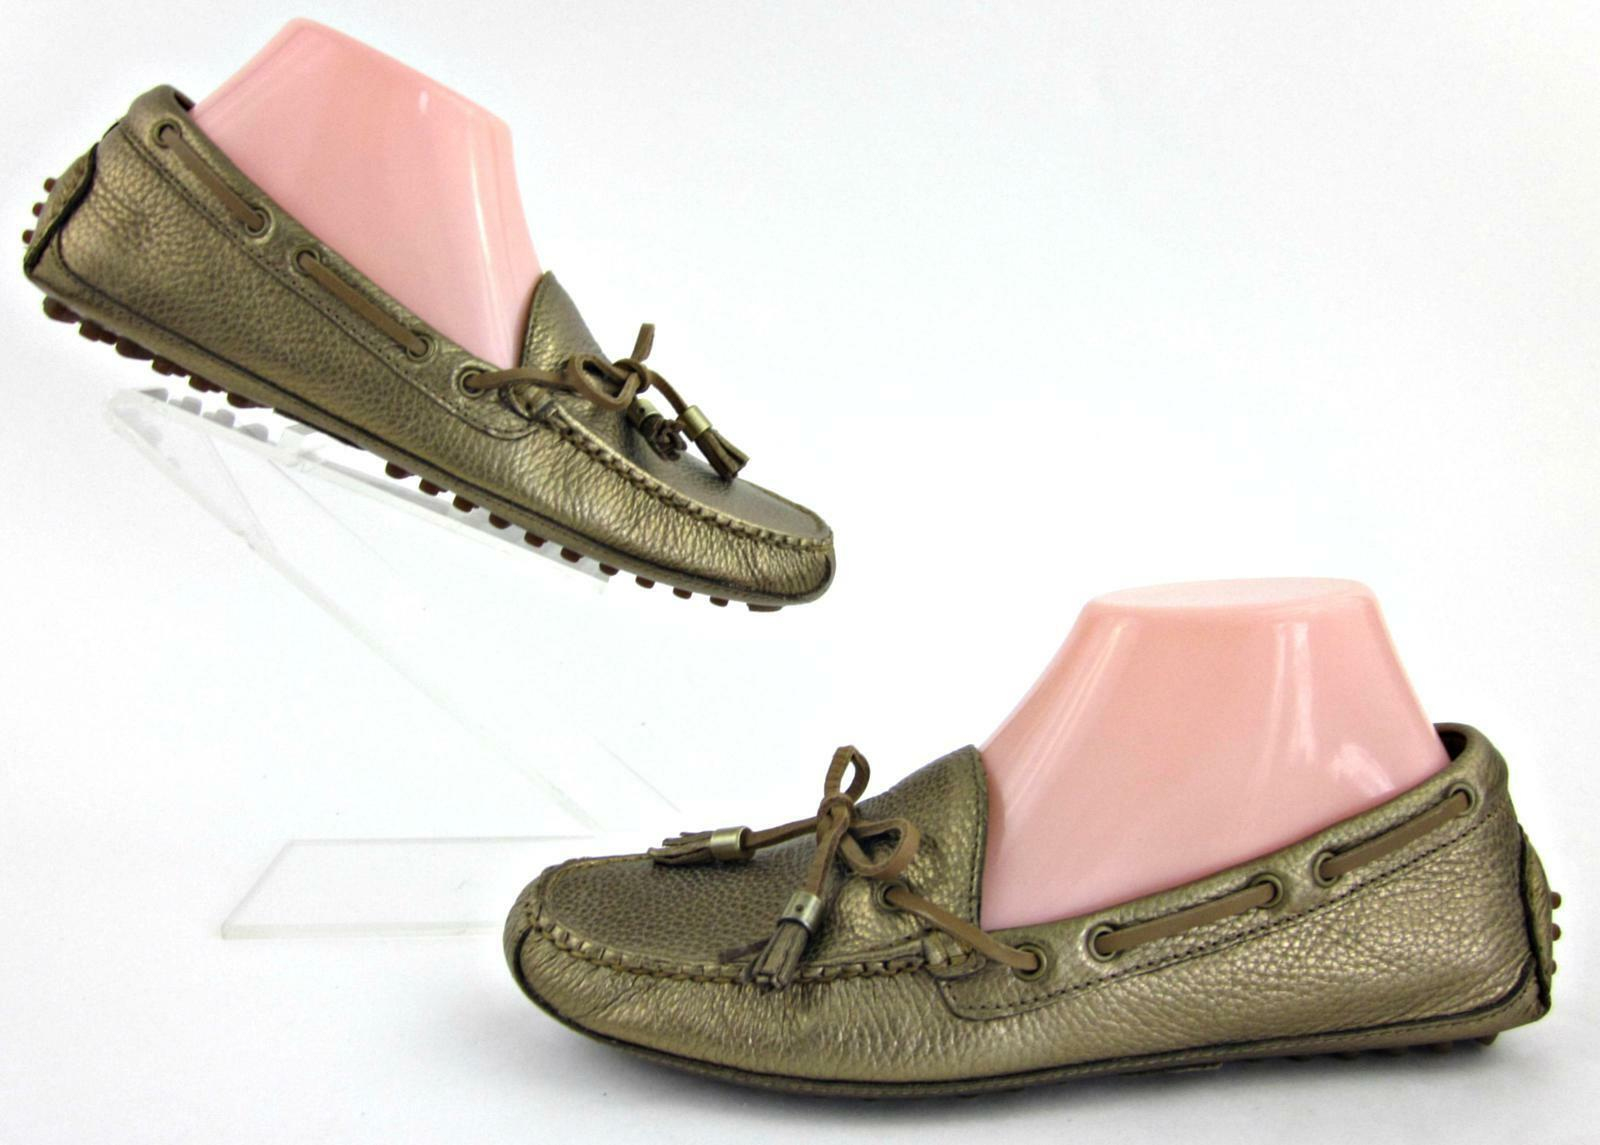 Cole Haan Grant donna Driving Moccasins Mettuttiic oro Leather 7B Fantastic